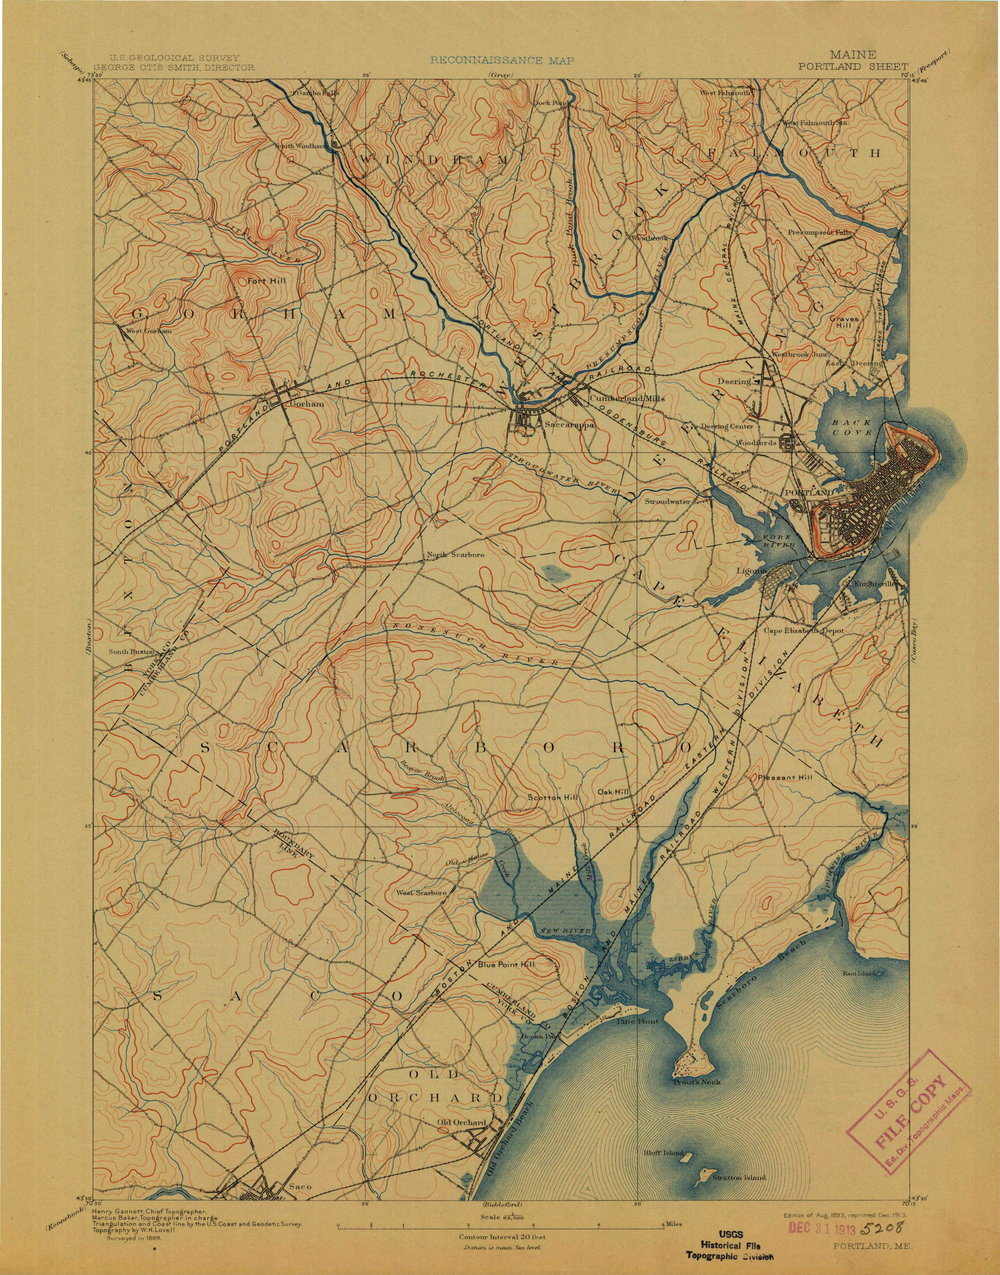 """USGS,  Portland, Me , 15' quadrangle, 1:62,500, surveyed in 1889, edition of 1893, reprinted 1913. You can download digital, georeferenced images of USGS topo quads from  https://ngmdb.usgs.gov/topoview/  (just click """"get maps"""")"""